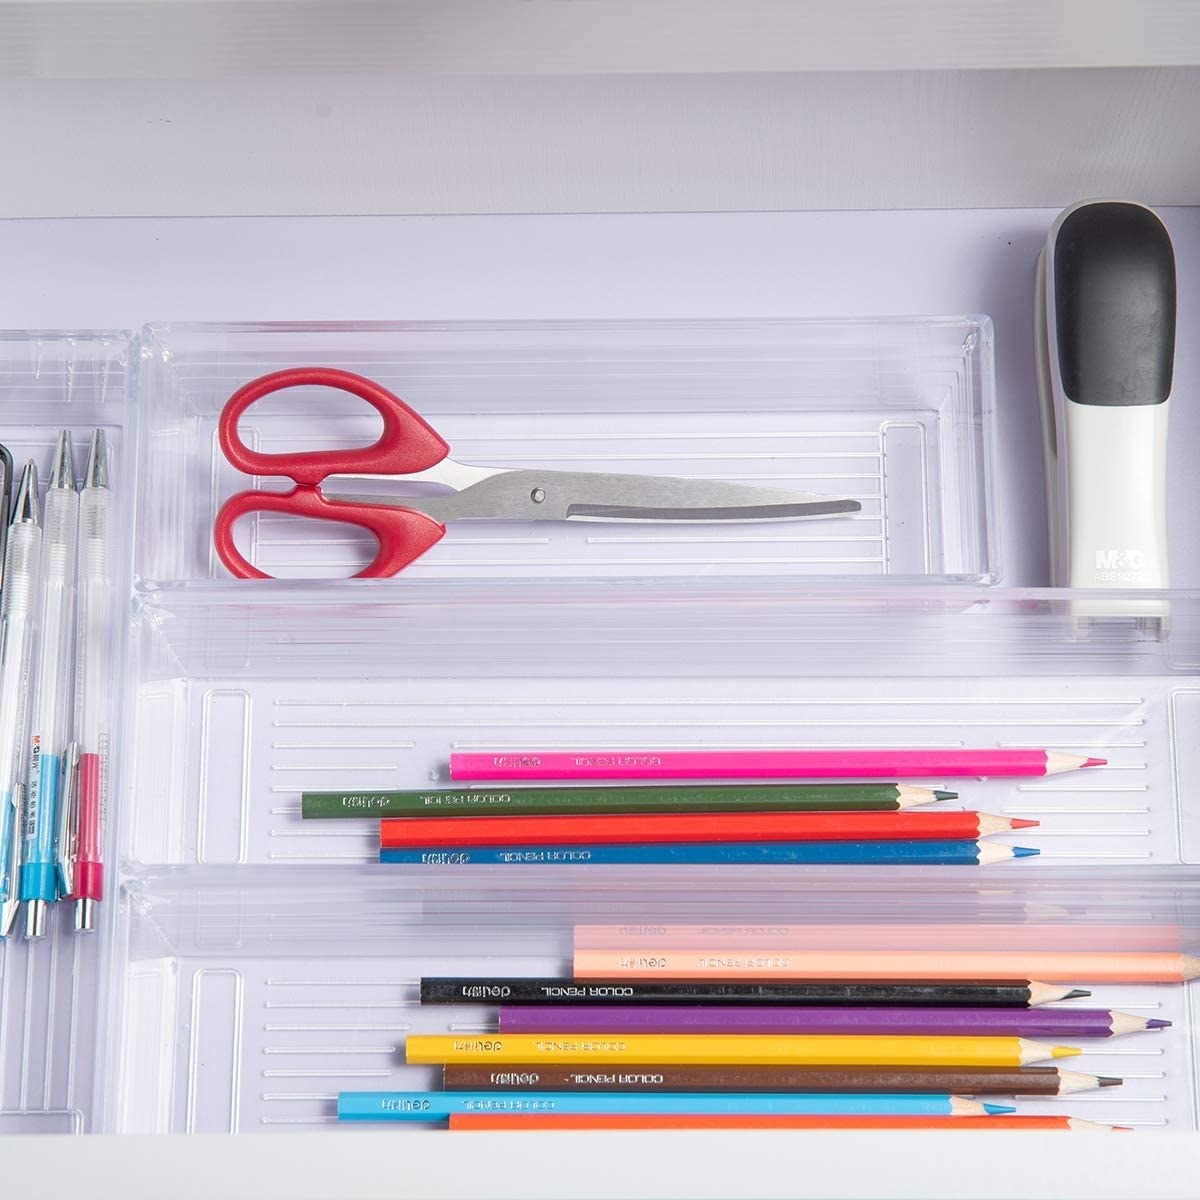 The acrylic trays in a drawer with pens, pencils, and scissors inside of them